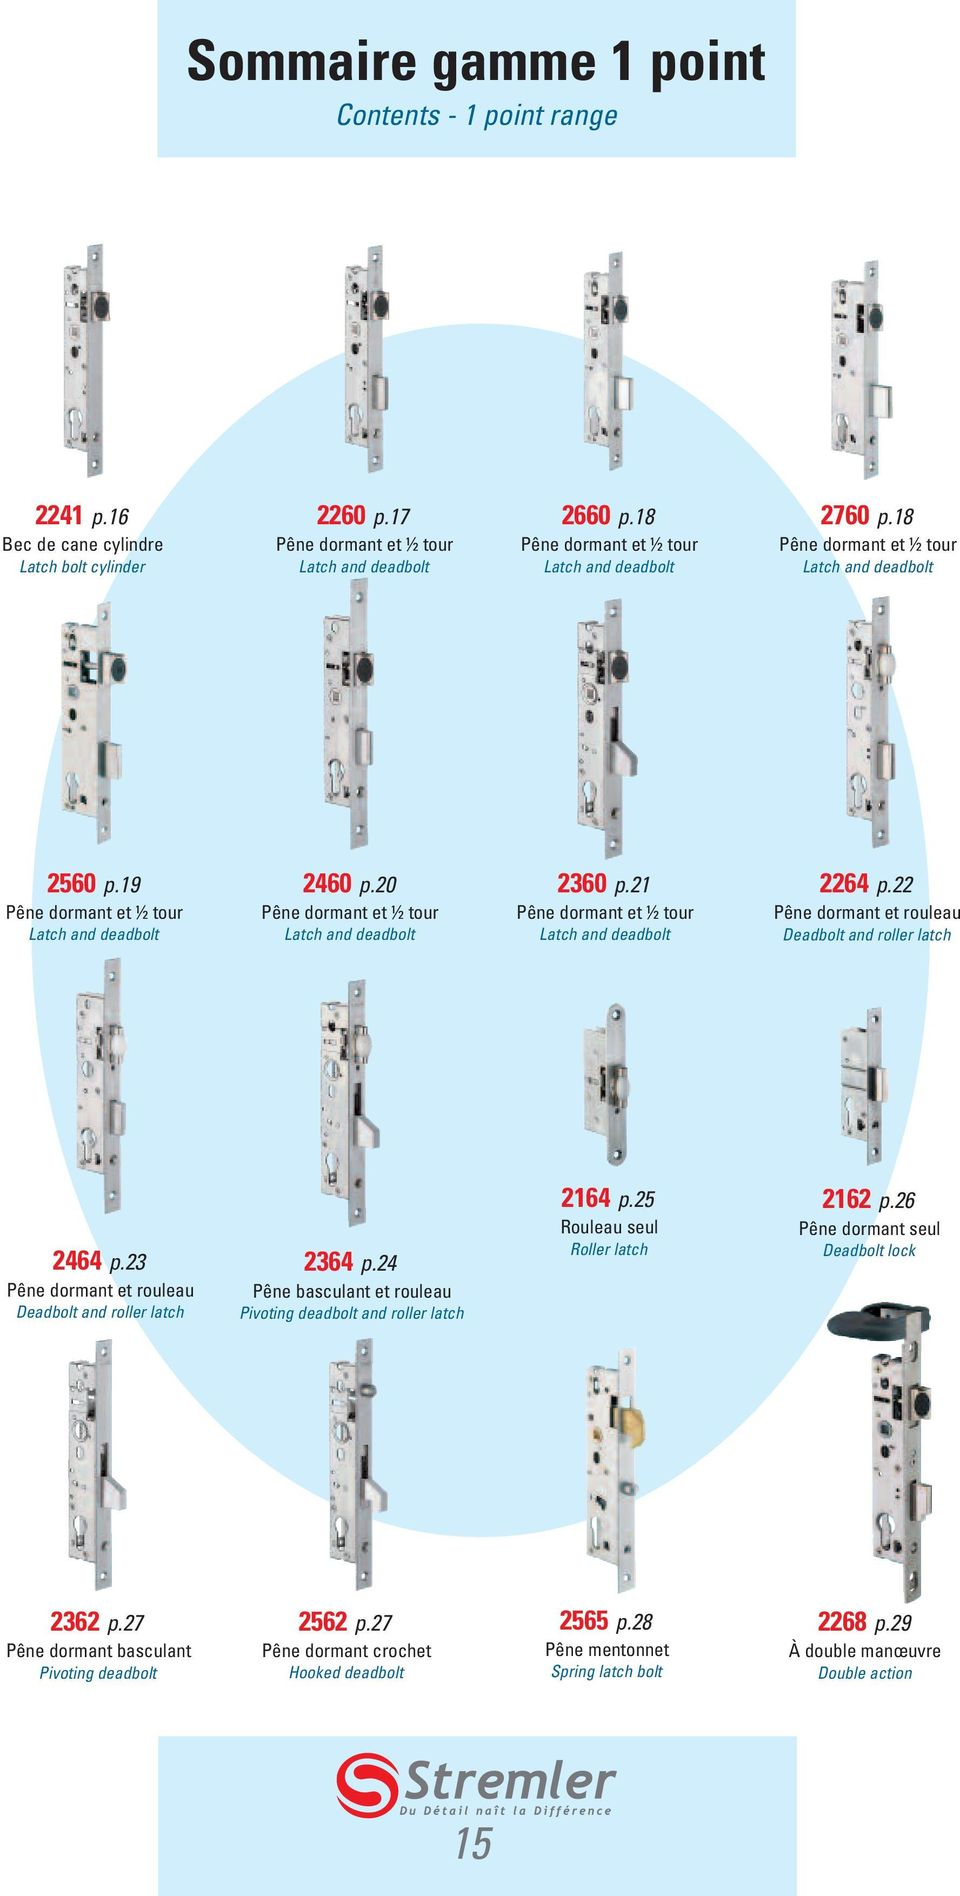 Pêne dormant et rouleau Deadbolt and roller latch 4 p.23 Pêne dormant et rouleau Deadbolt and roller latch 234 p. Pêne basculant et rouleau Pivoting deadbolt and roller latch p.